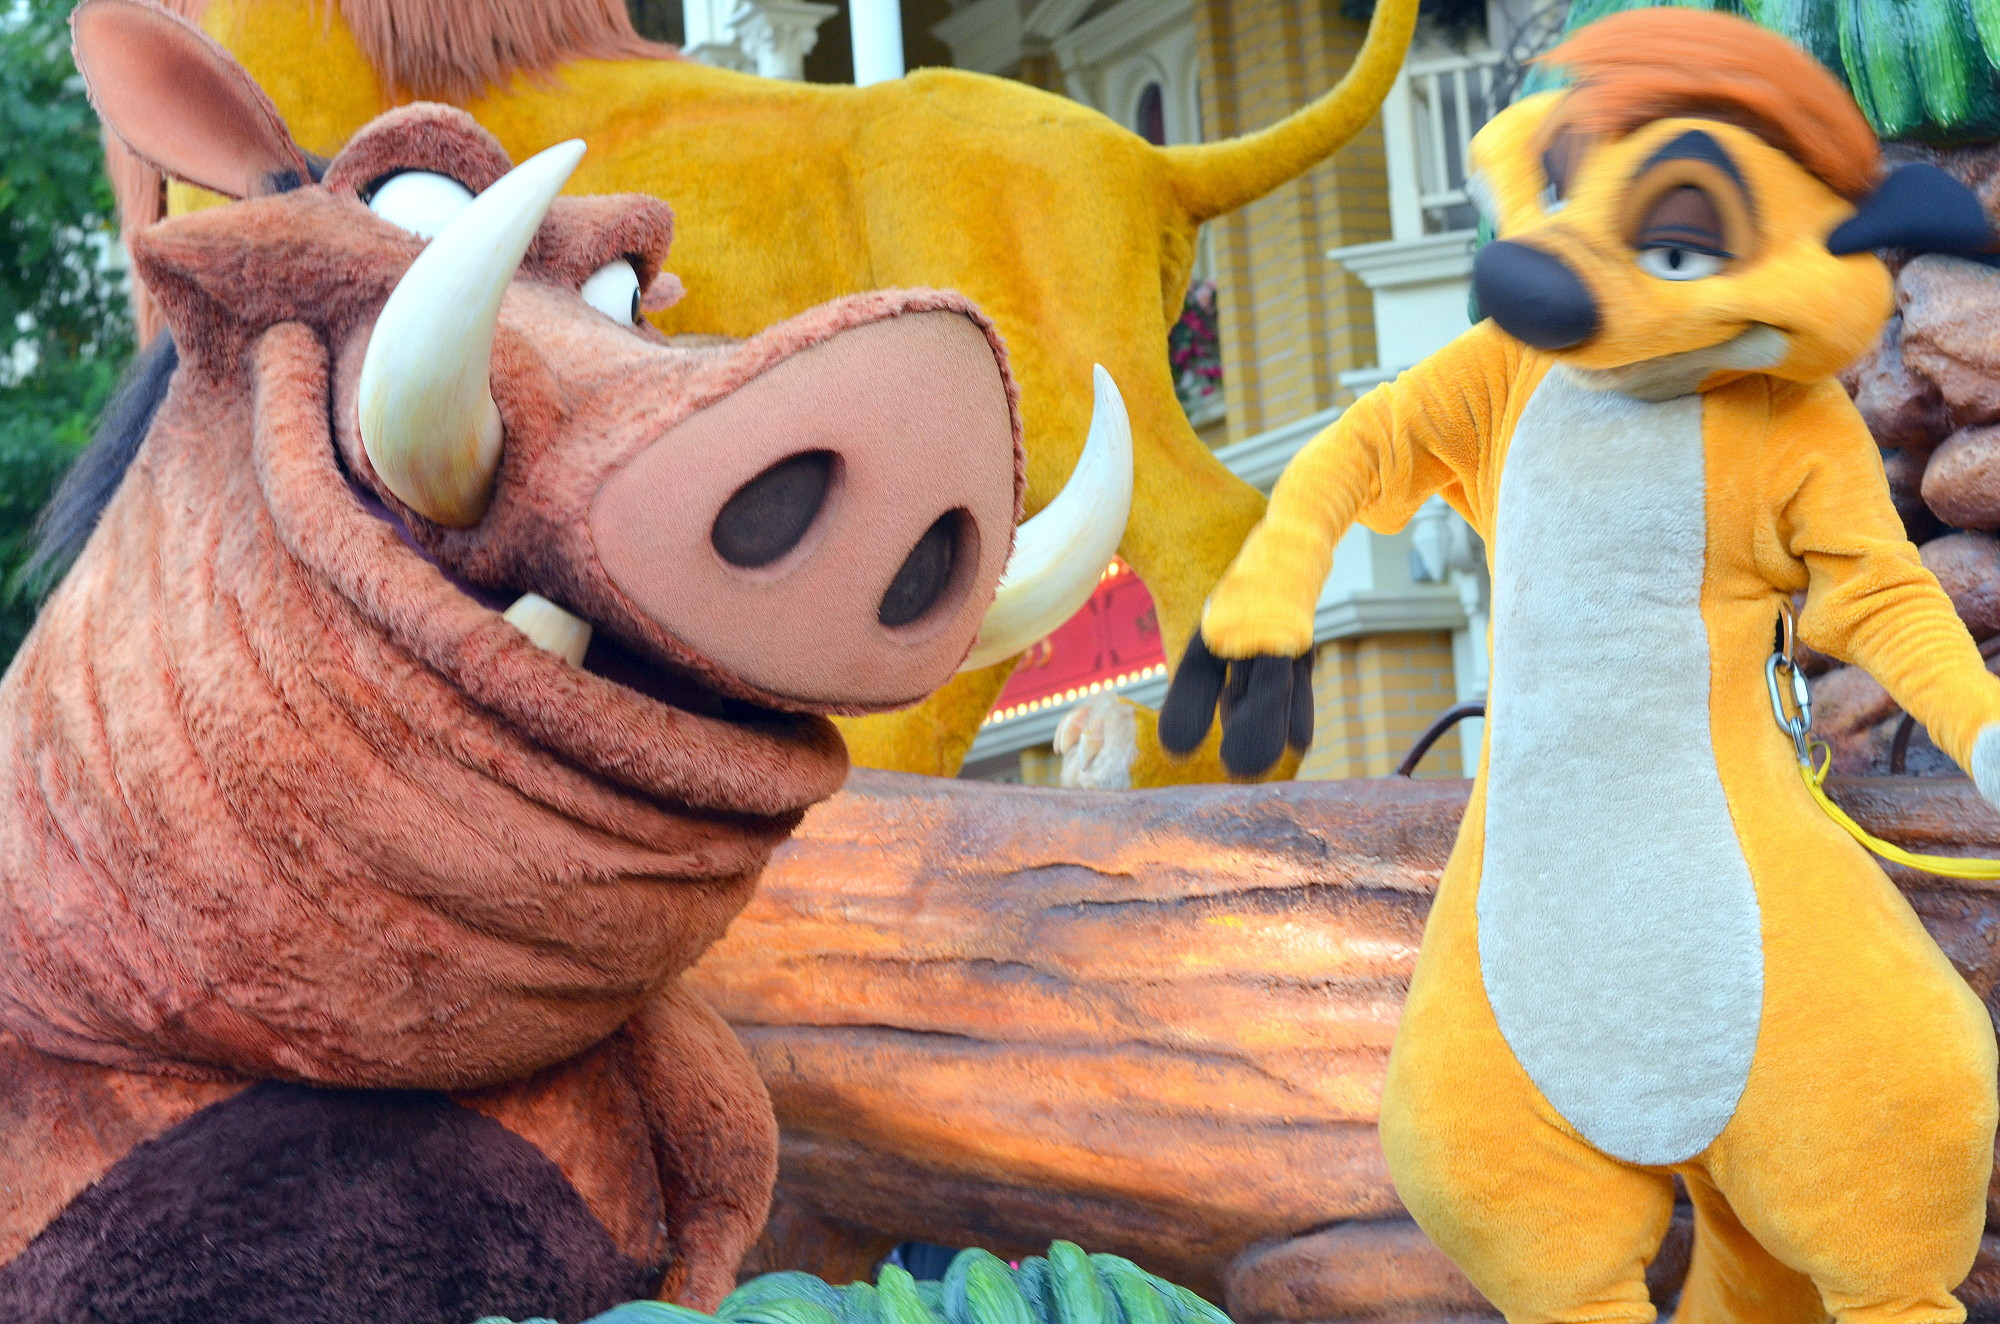 Timon and Pumba